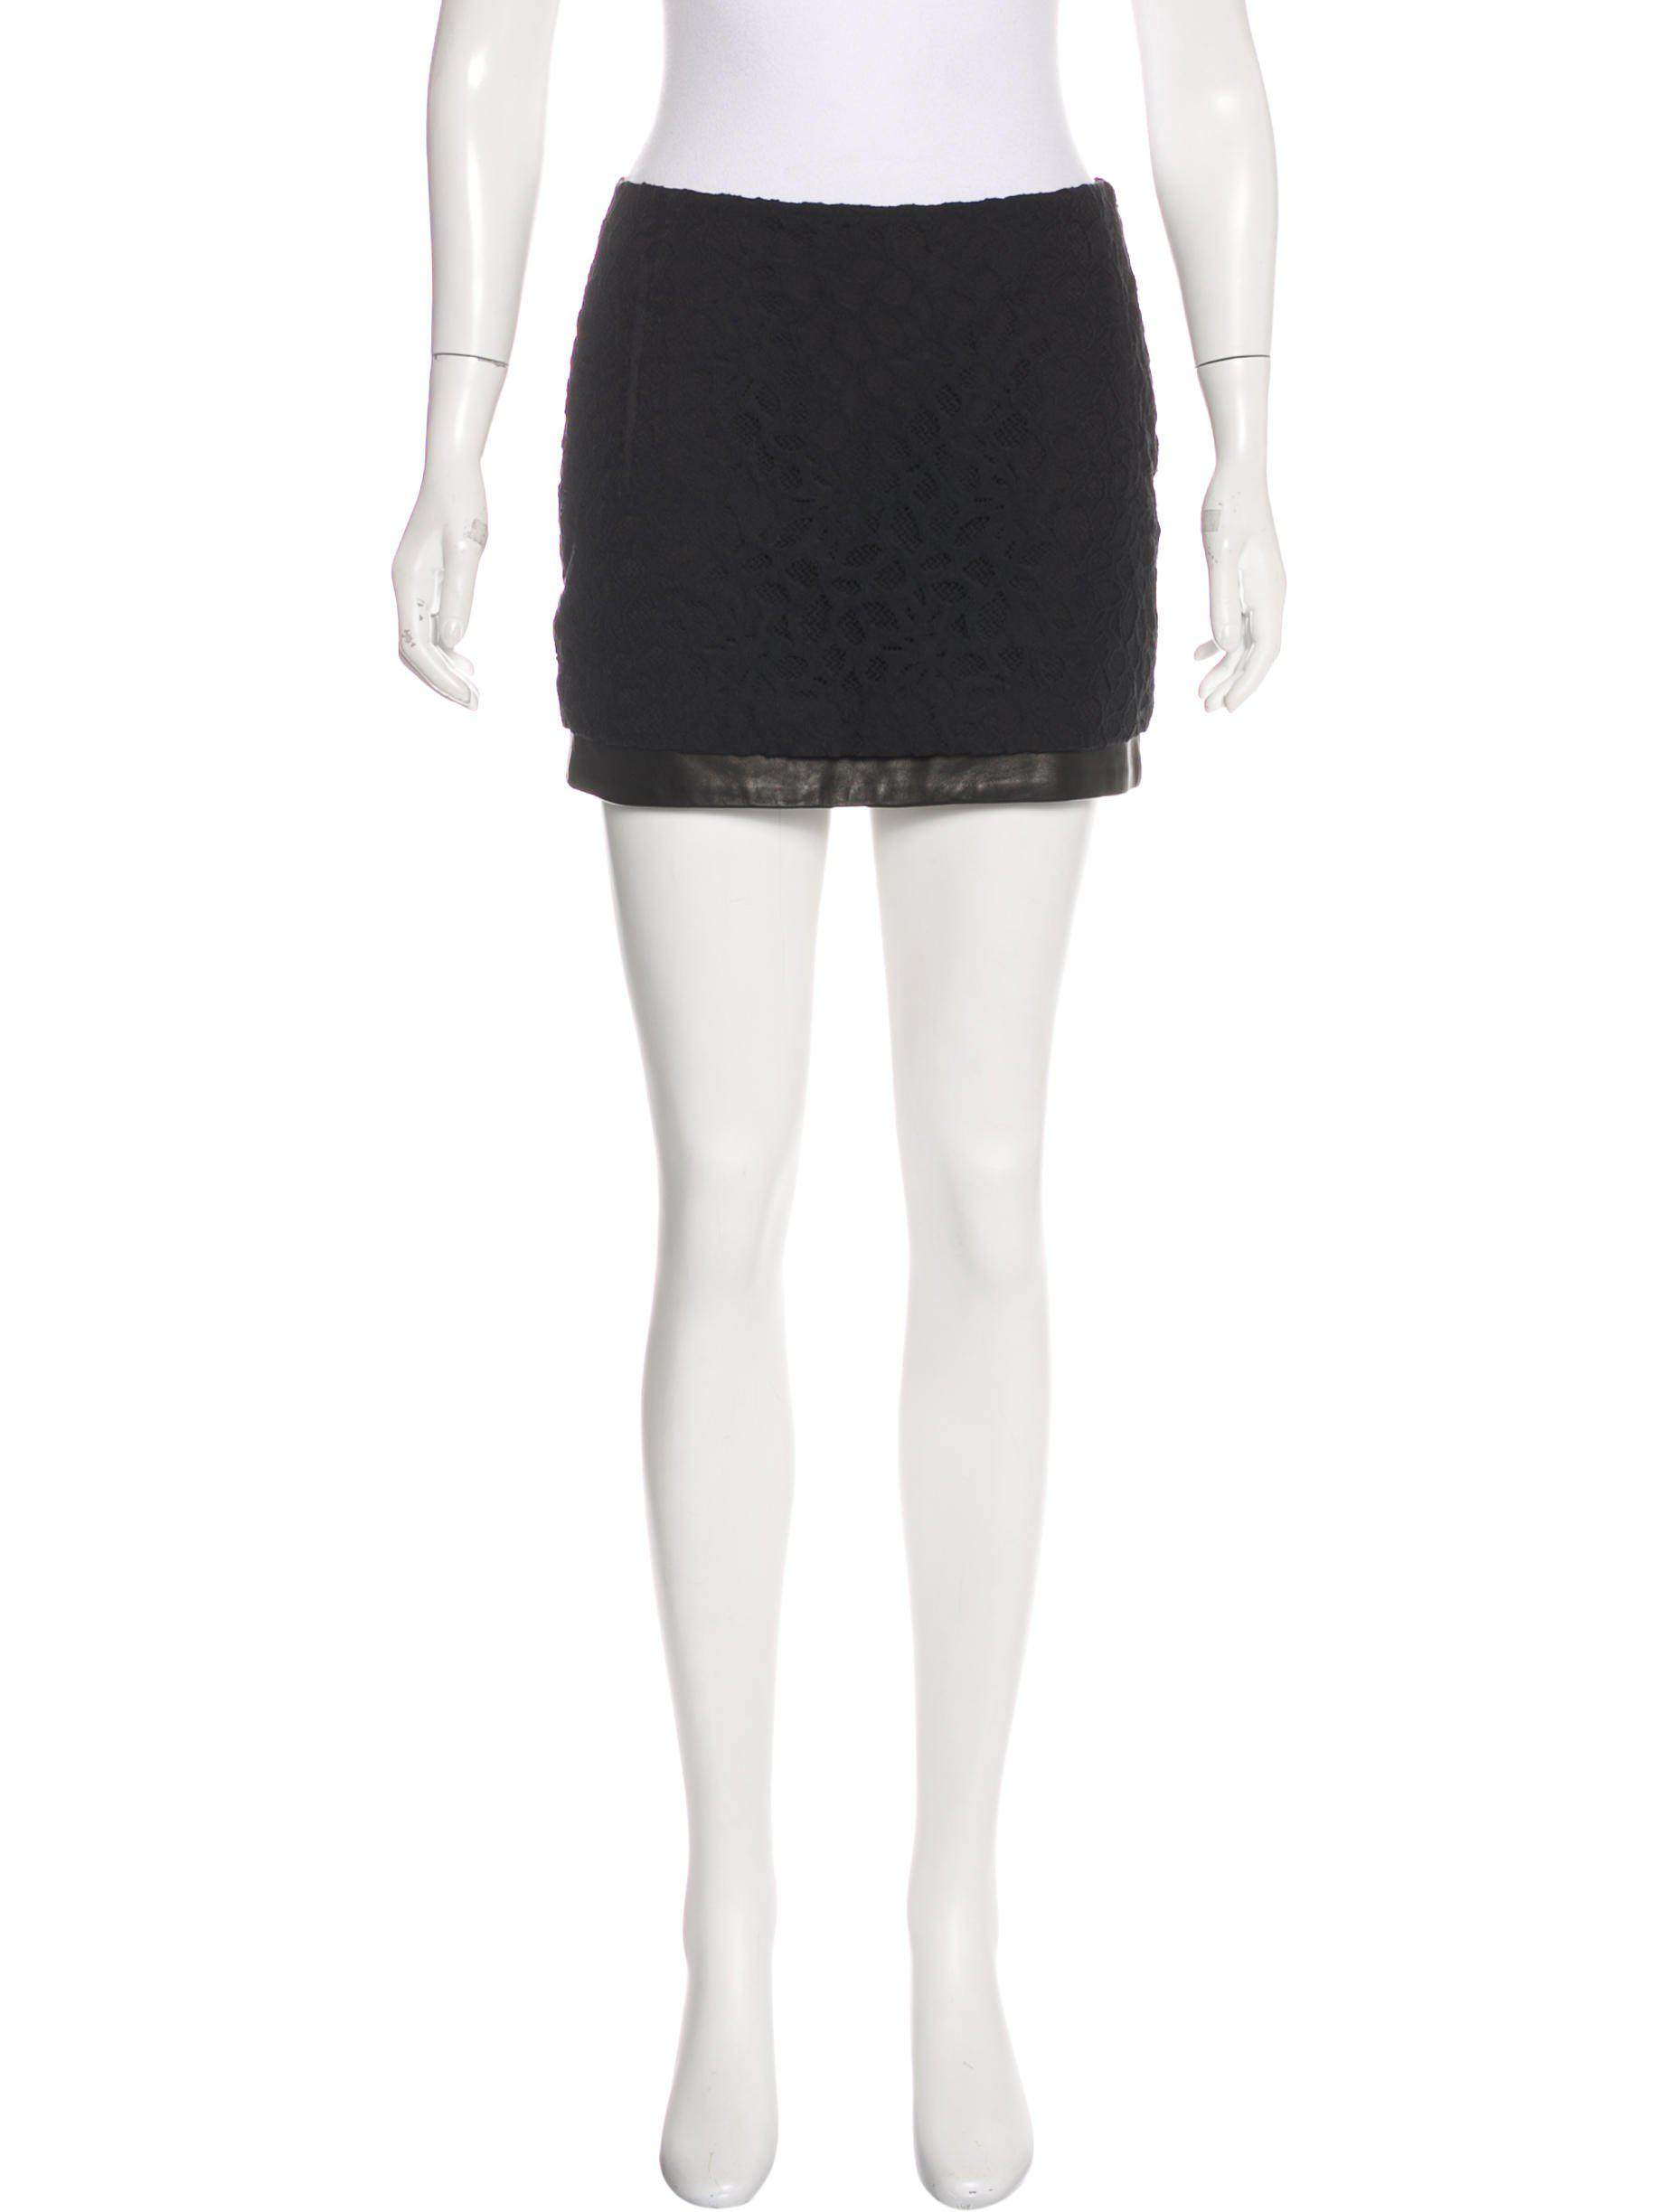 Diane von Furstenberg Elley Lace Skirt Inexpensive Cheap Price Outlet New Styles 2018 New For Sale KoS9s